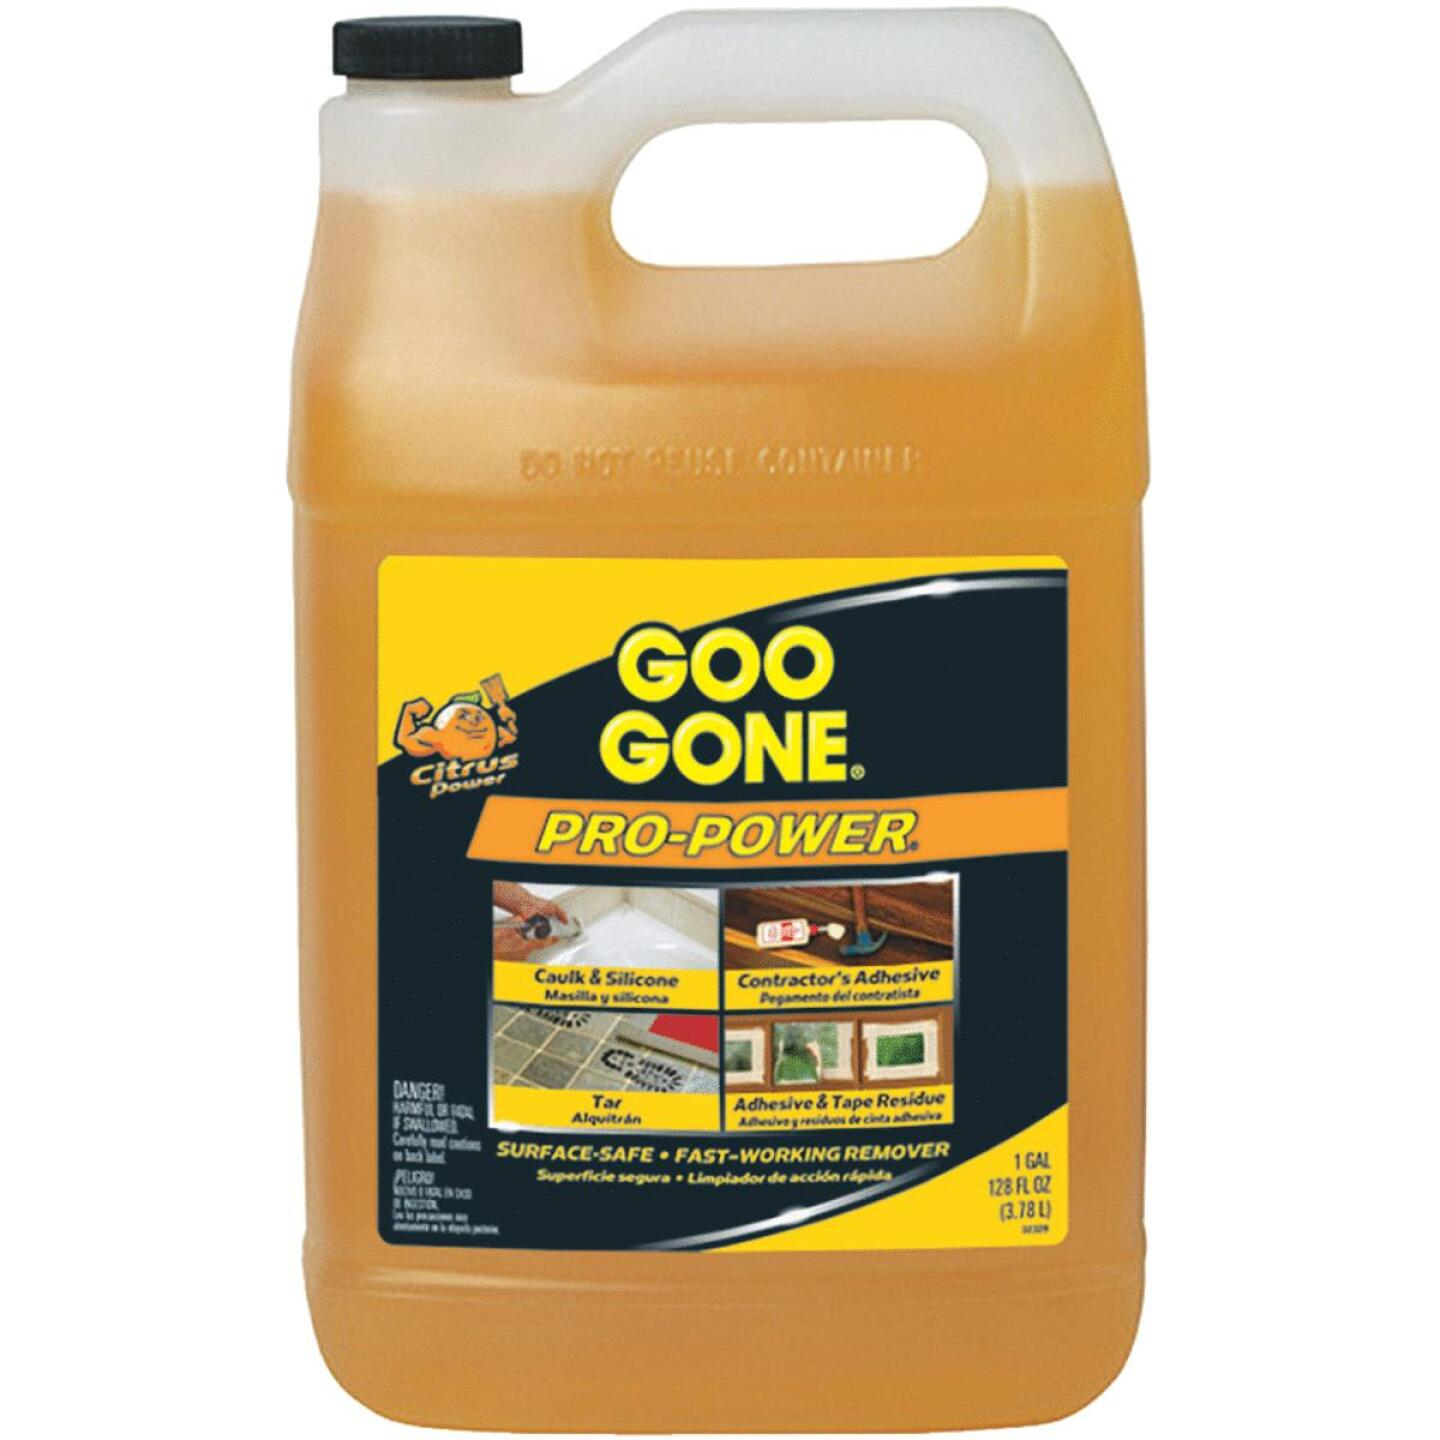 Goo Gone 1 Gal. Pro-Power Adhesive Remover Image 286